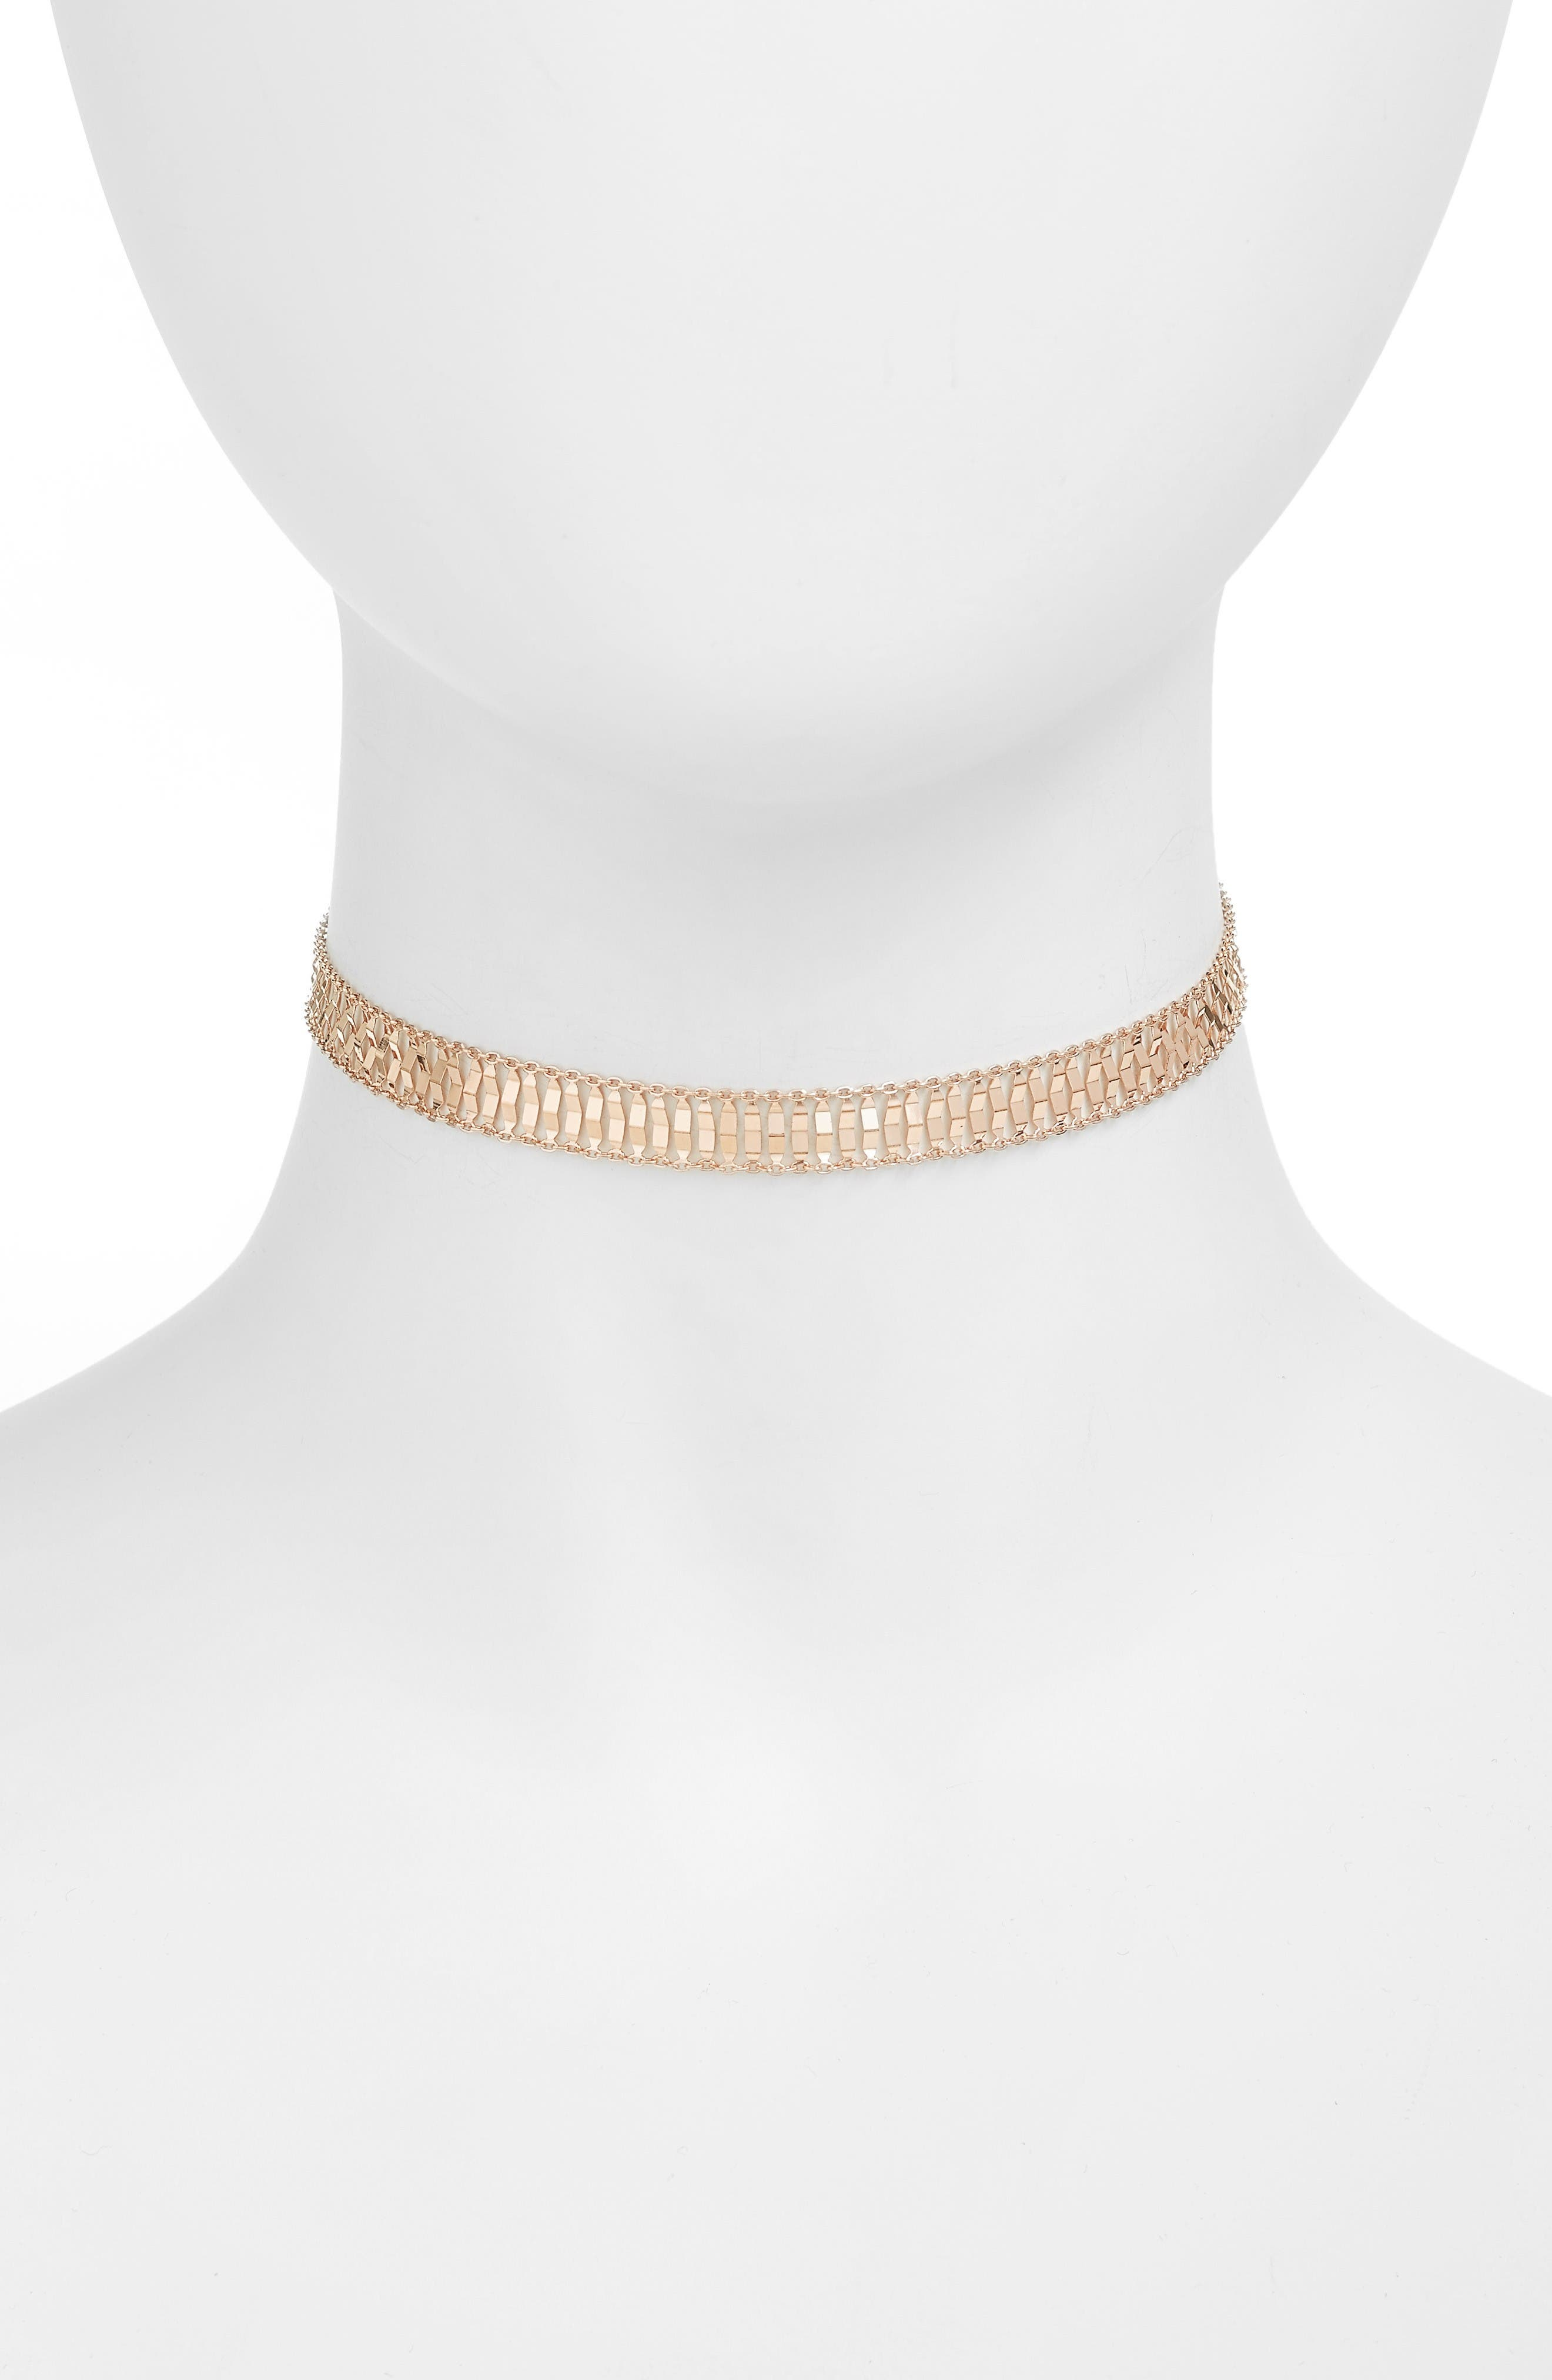 Alternate Image 1 Selected - Argento Vivo Wide Choker